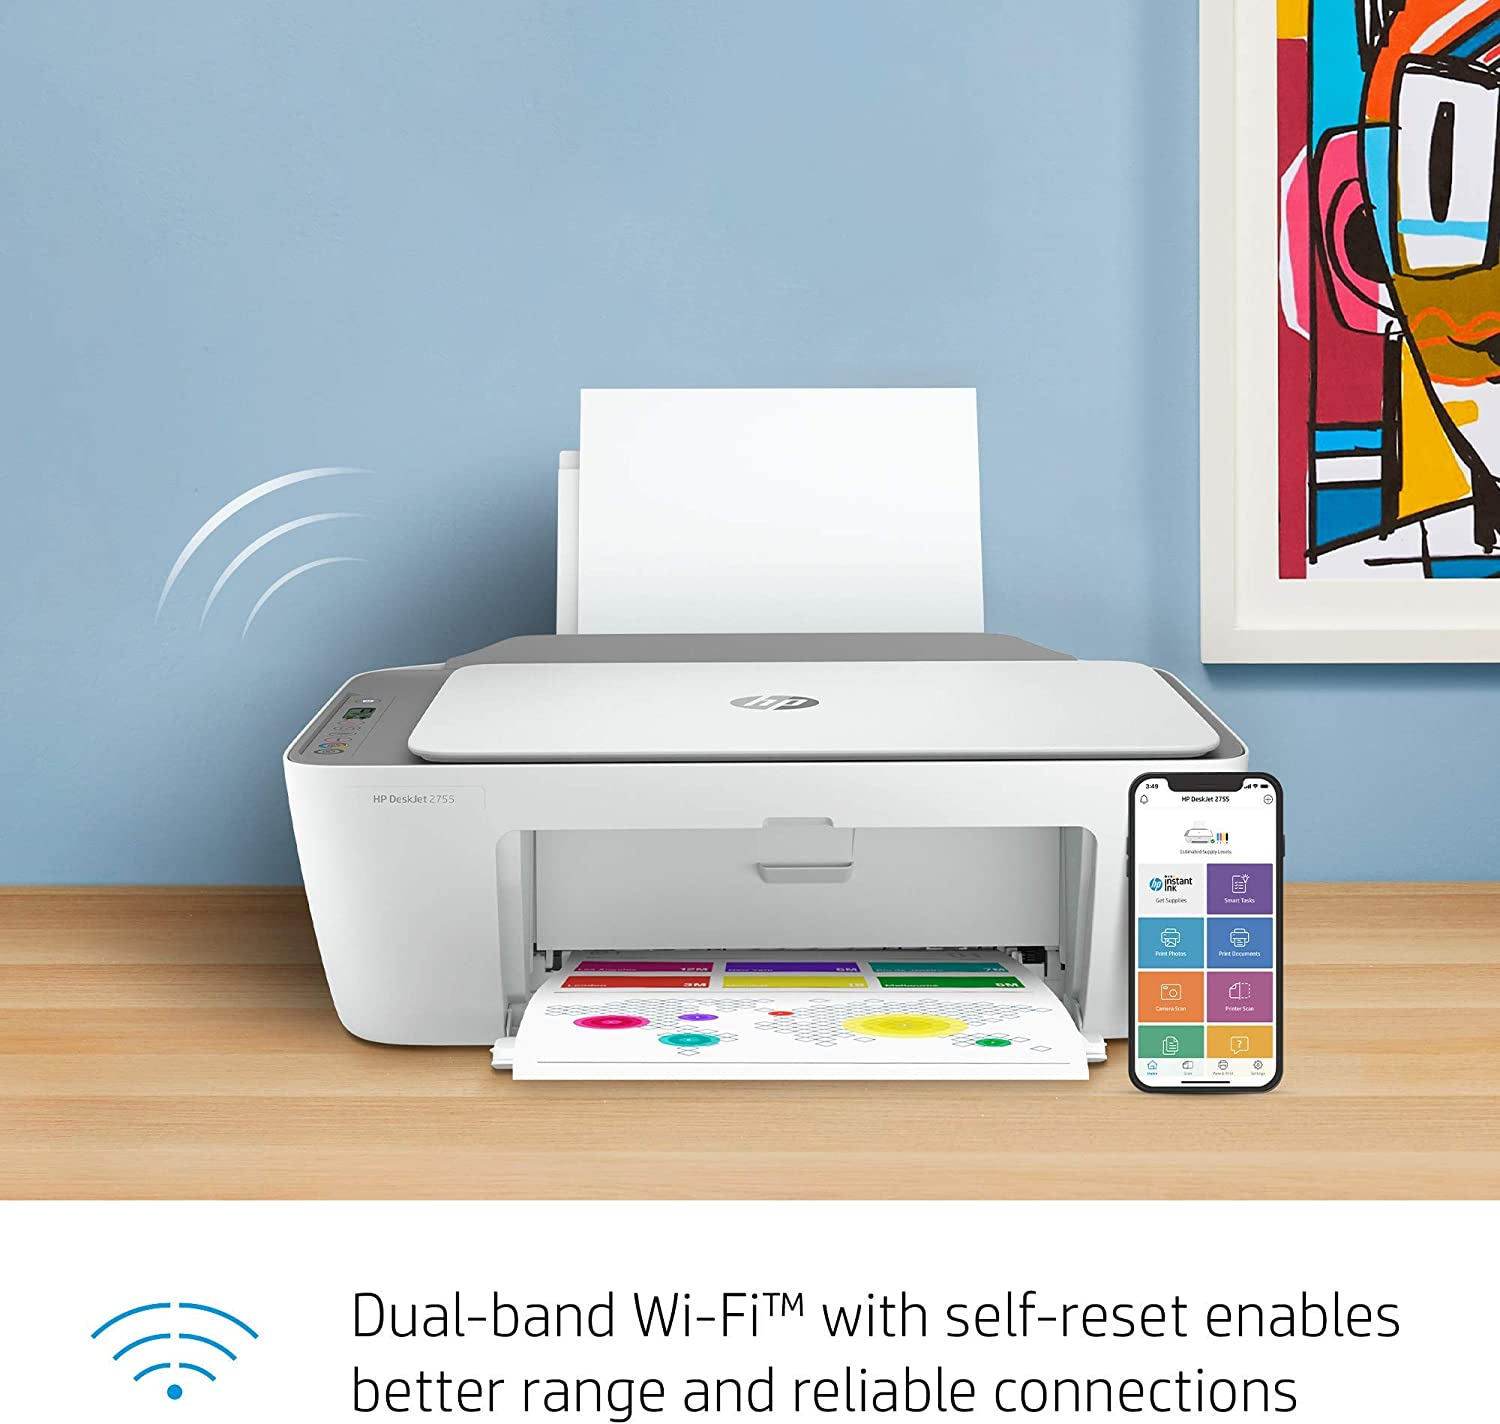 HP DeskJet 2755 Wireless All-in-One Printer   Mobile Print, Scan & Copy   HP Instant Ink Ready (3XV17A) (Renewed)